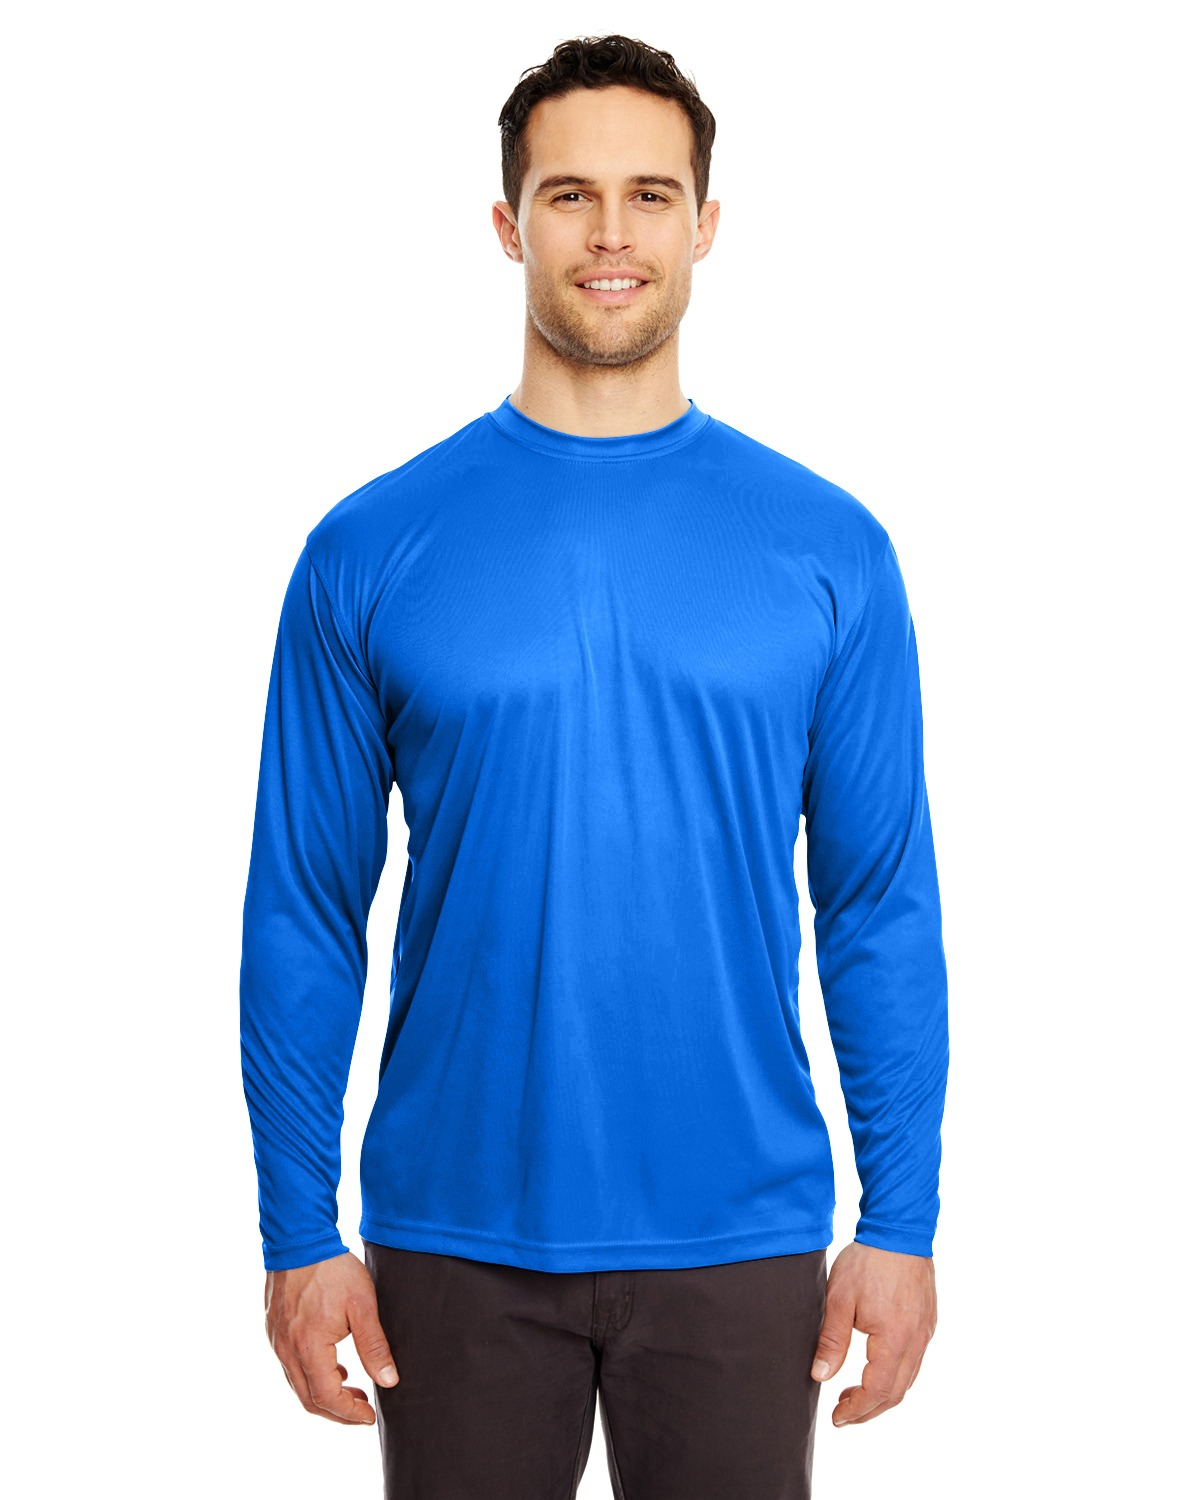 UltraClub 8422 – Adult Cool & Dry Sport Long-Sleeve Performance Interlock T-Shirt 1